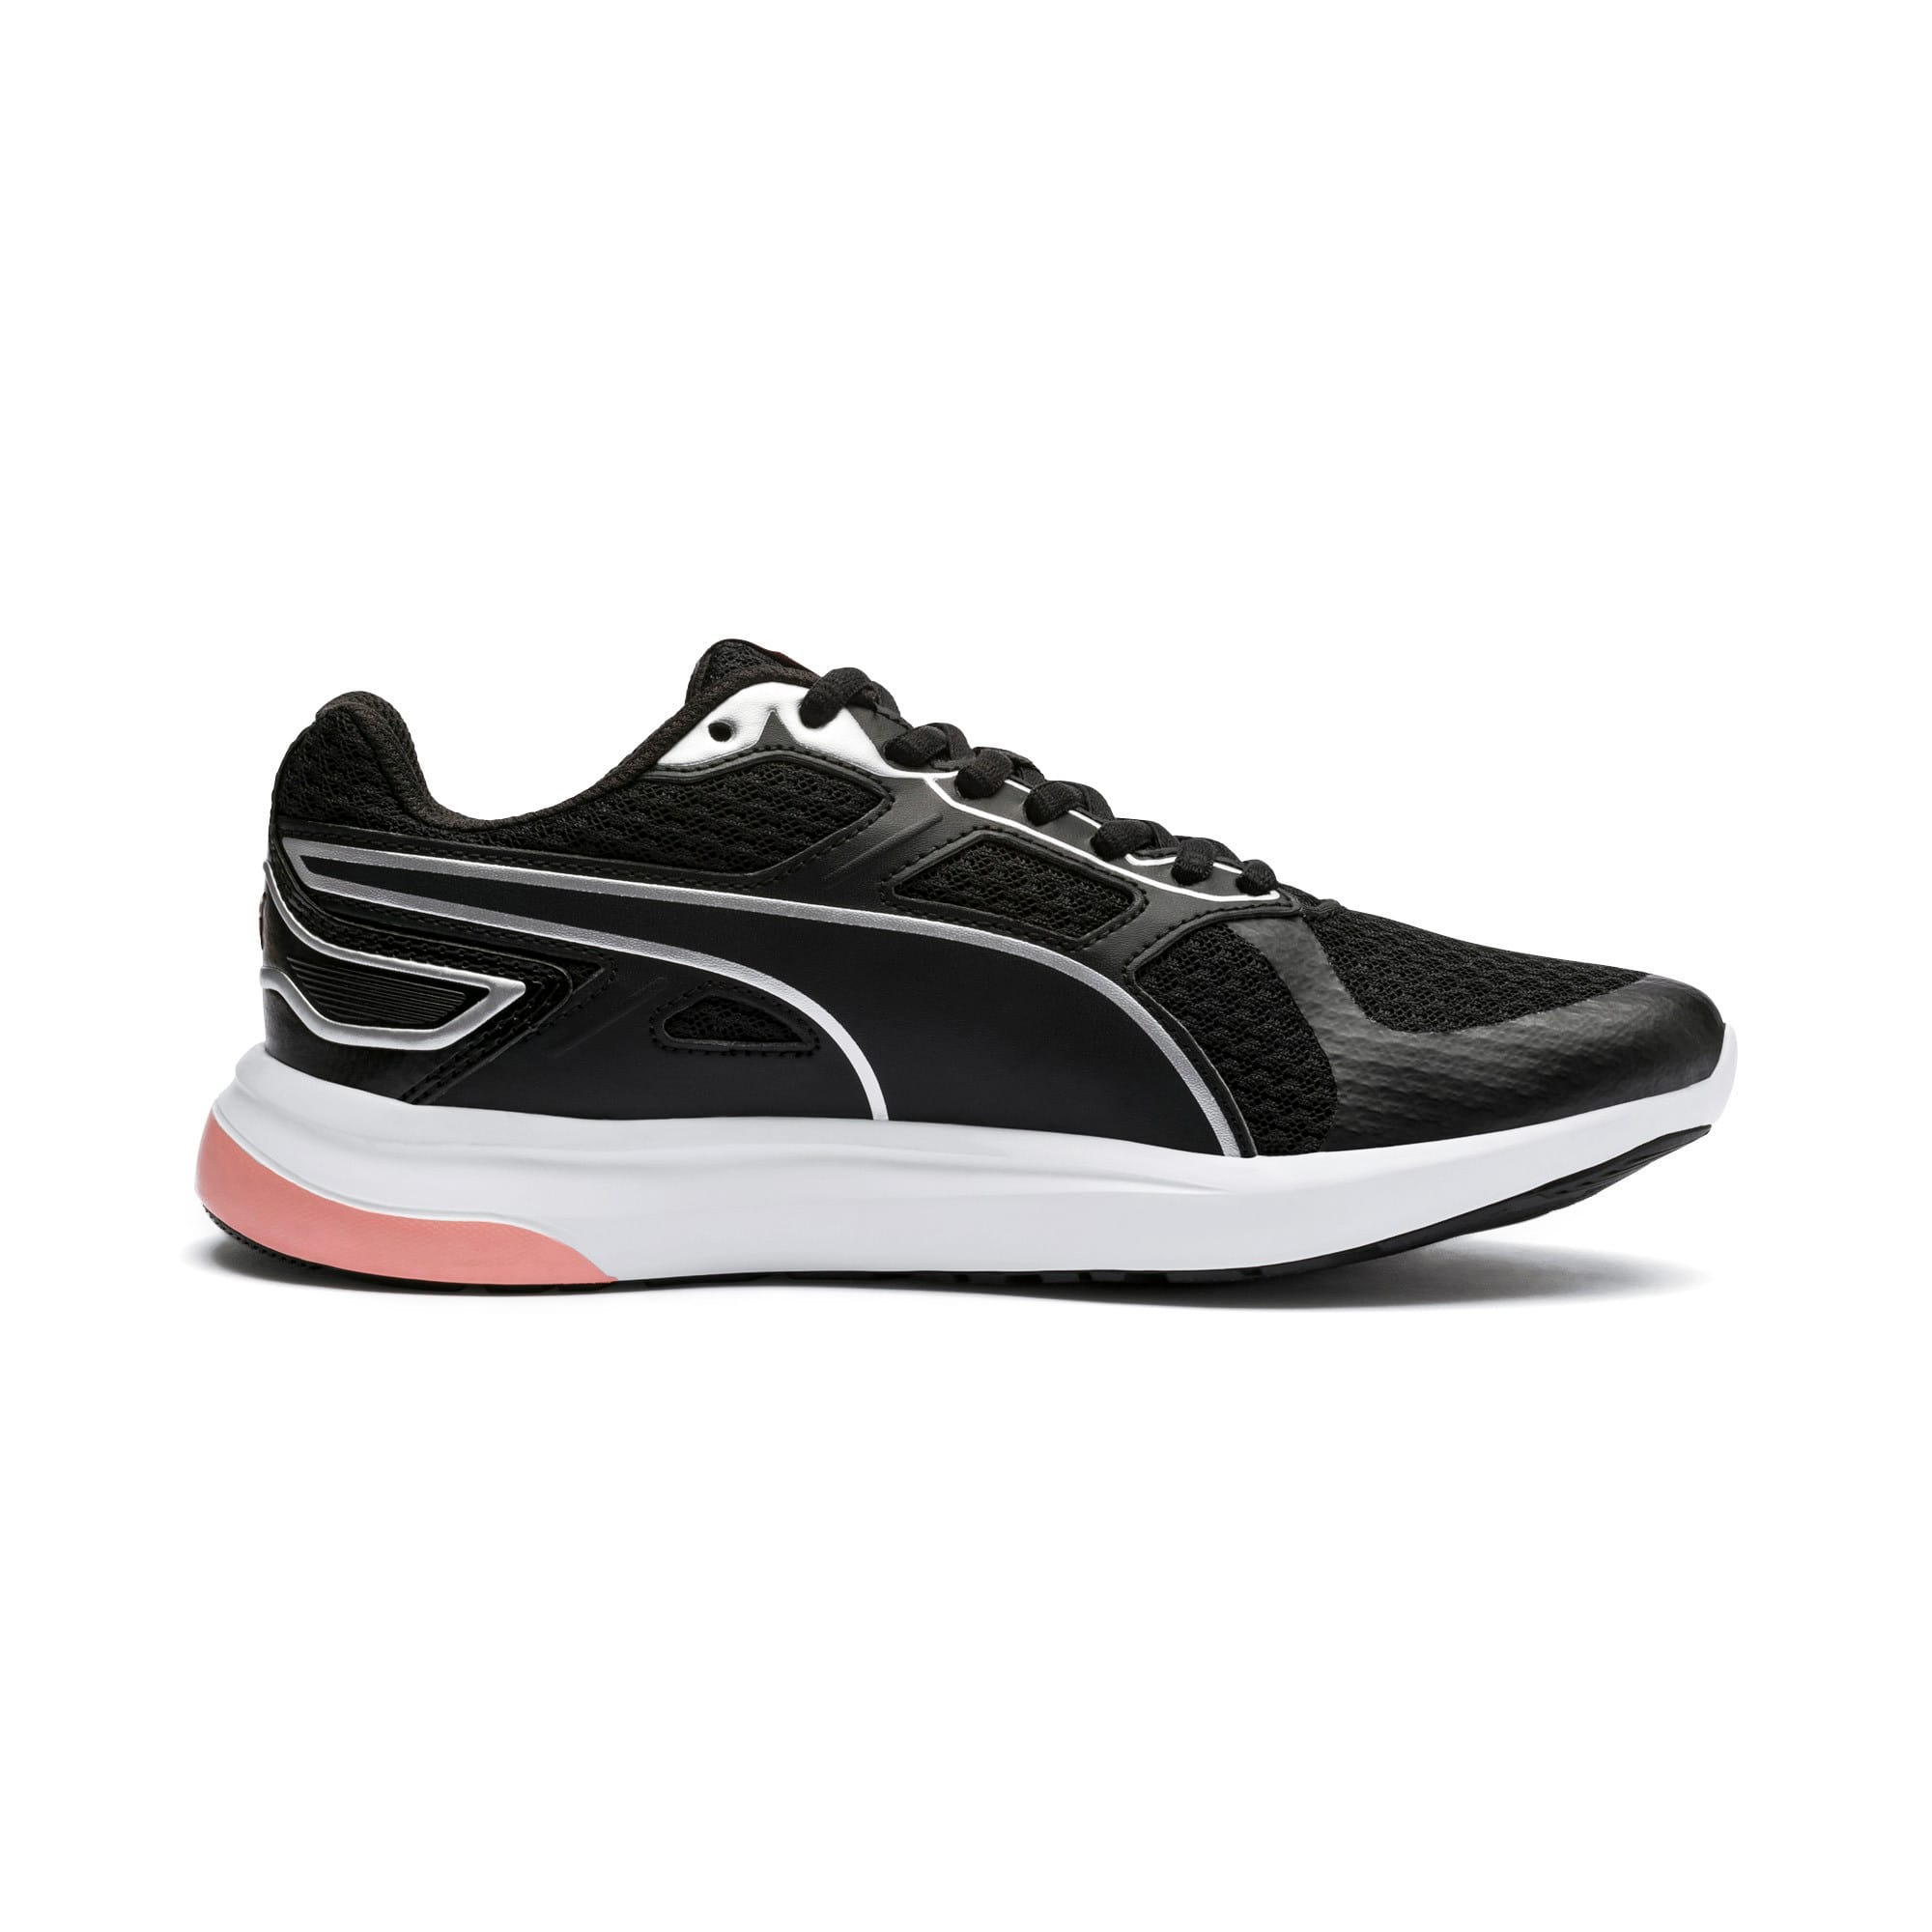 Thumbnail 5 of Escaper Tech Sneakers, Black-Silver-White-Peach Bud, medium-IND